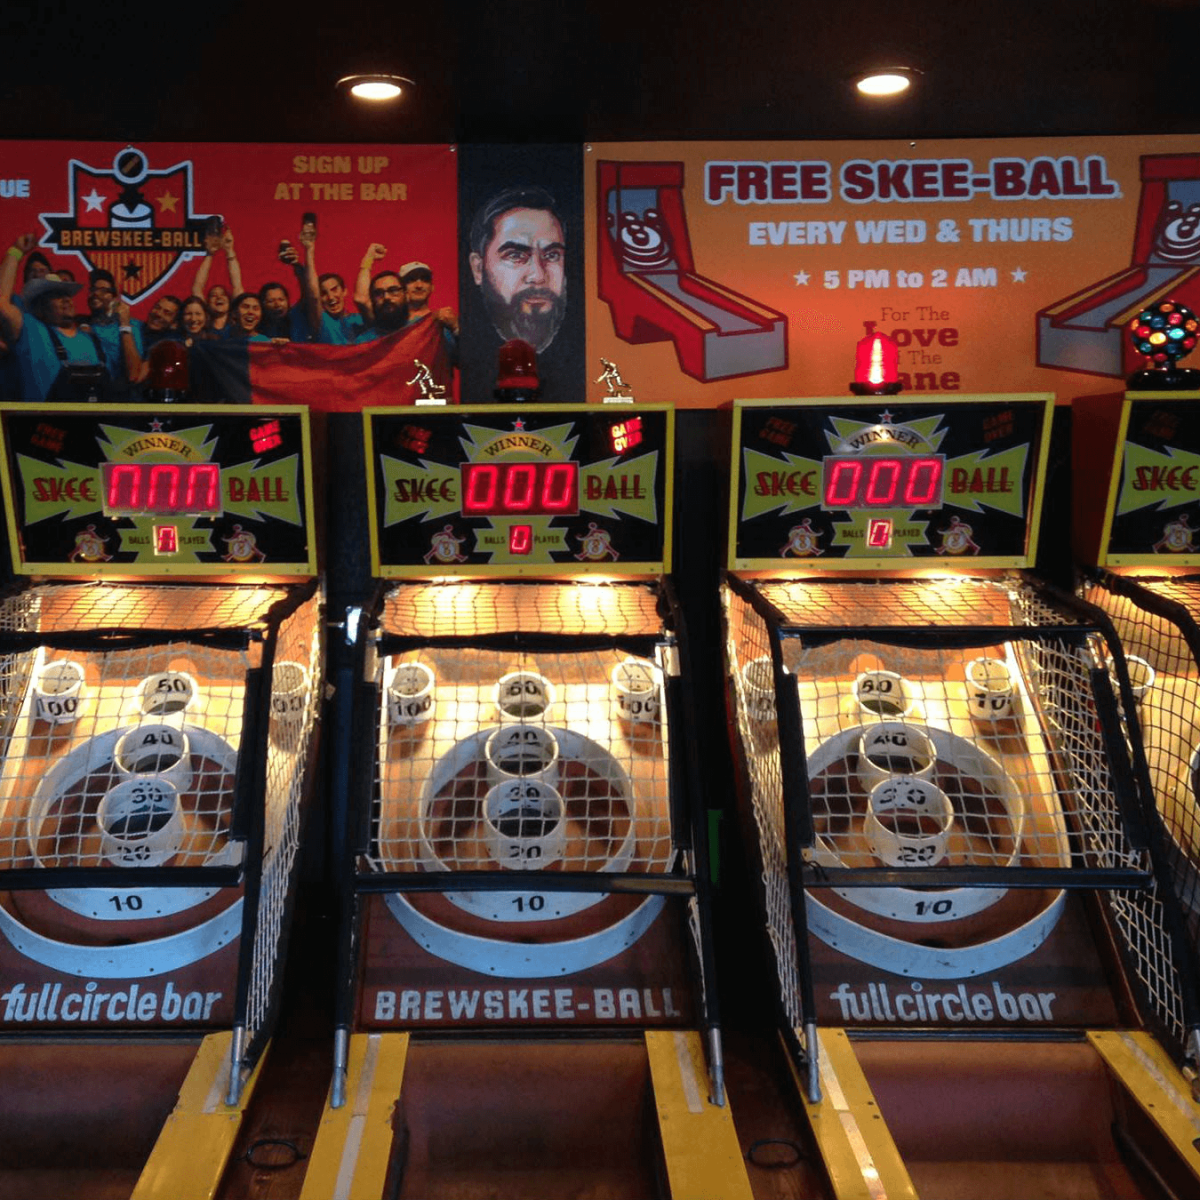 Full Circle Bar brewskee-ball games